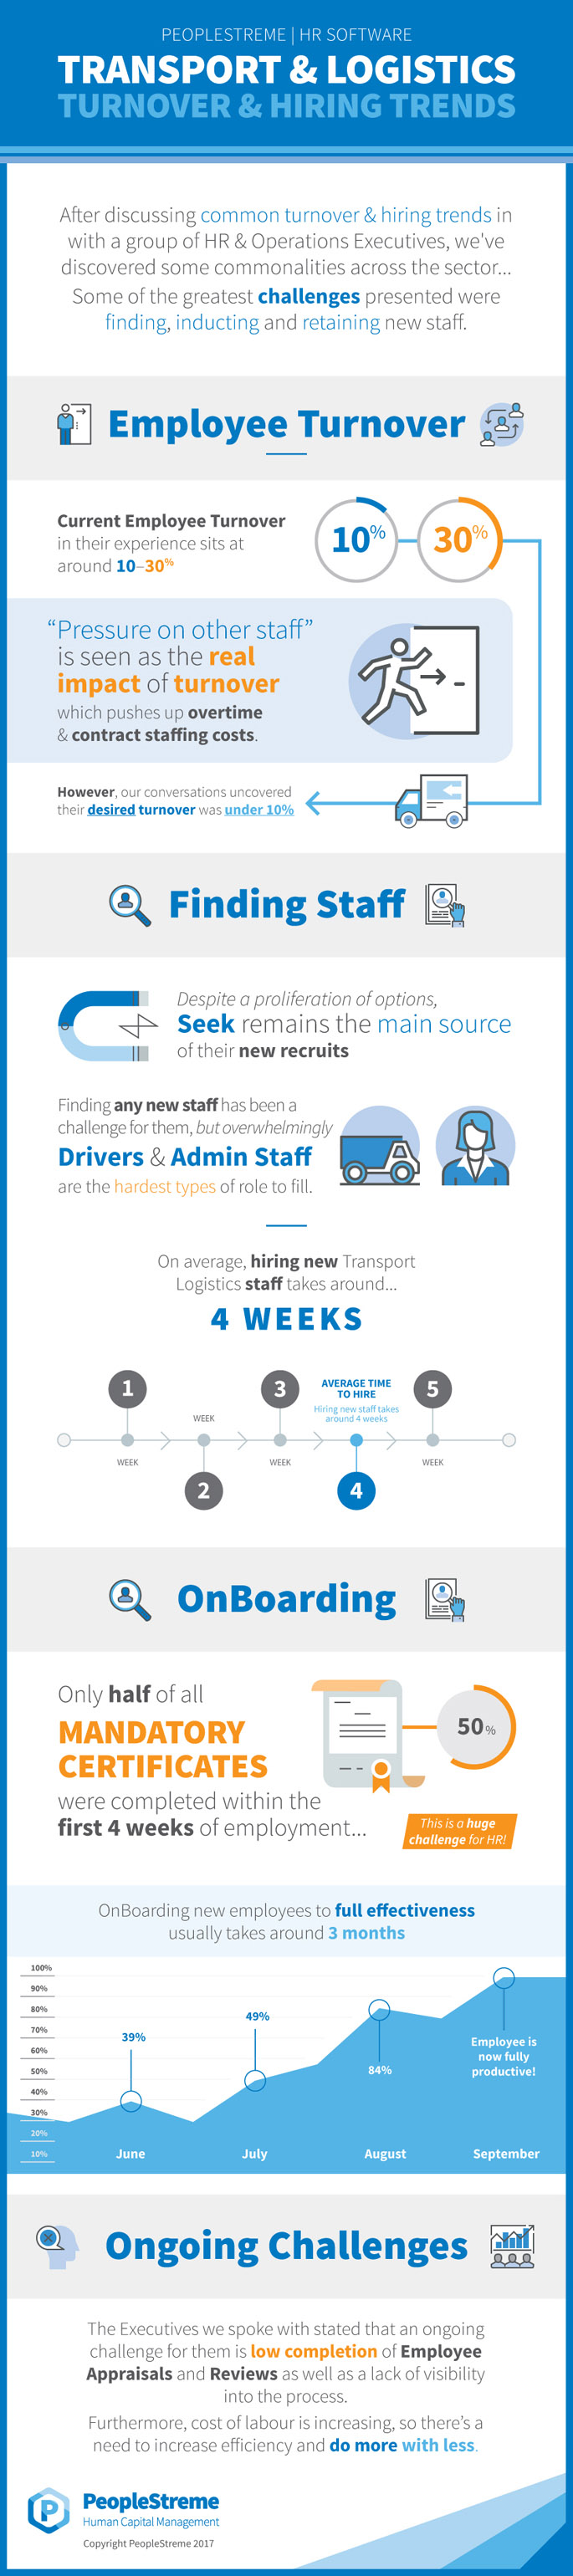 Transport & Logistics Employee Hiring & Turnover Infographic by PeopleStreme